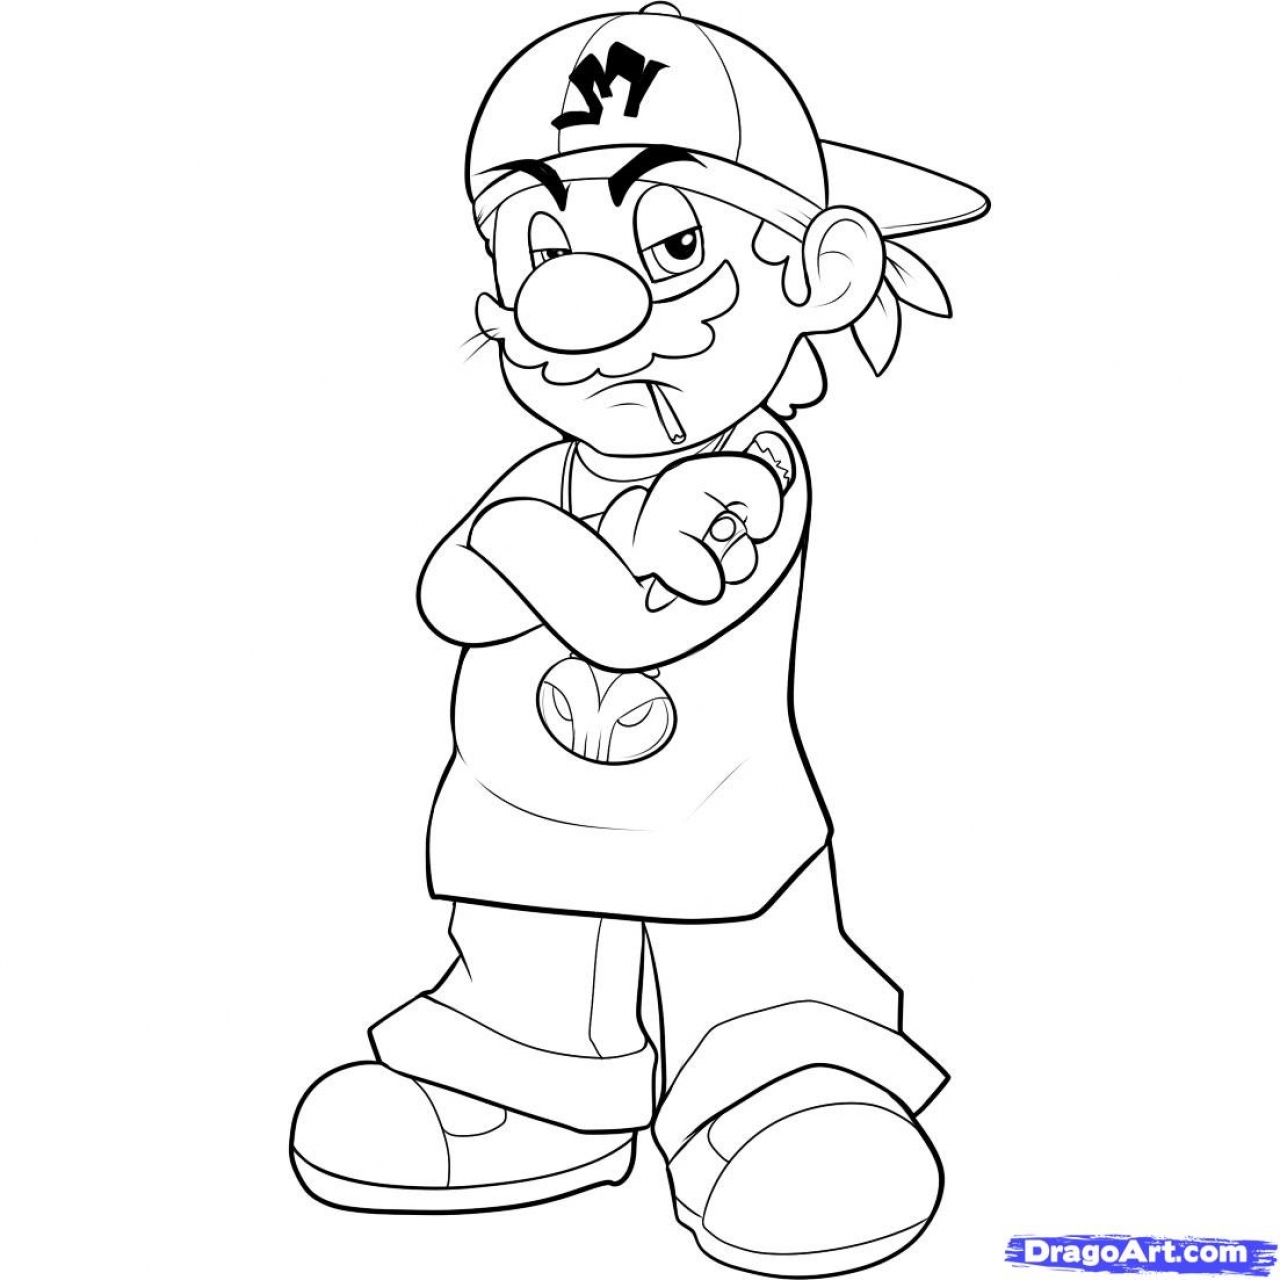 cartoon character drawing 55 cute and easy cartoon characters to draw when bored cartoon character drawing